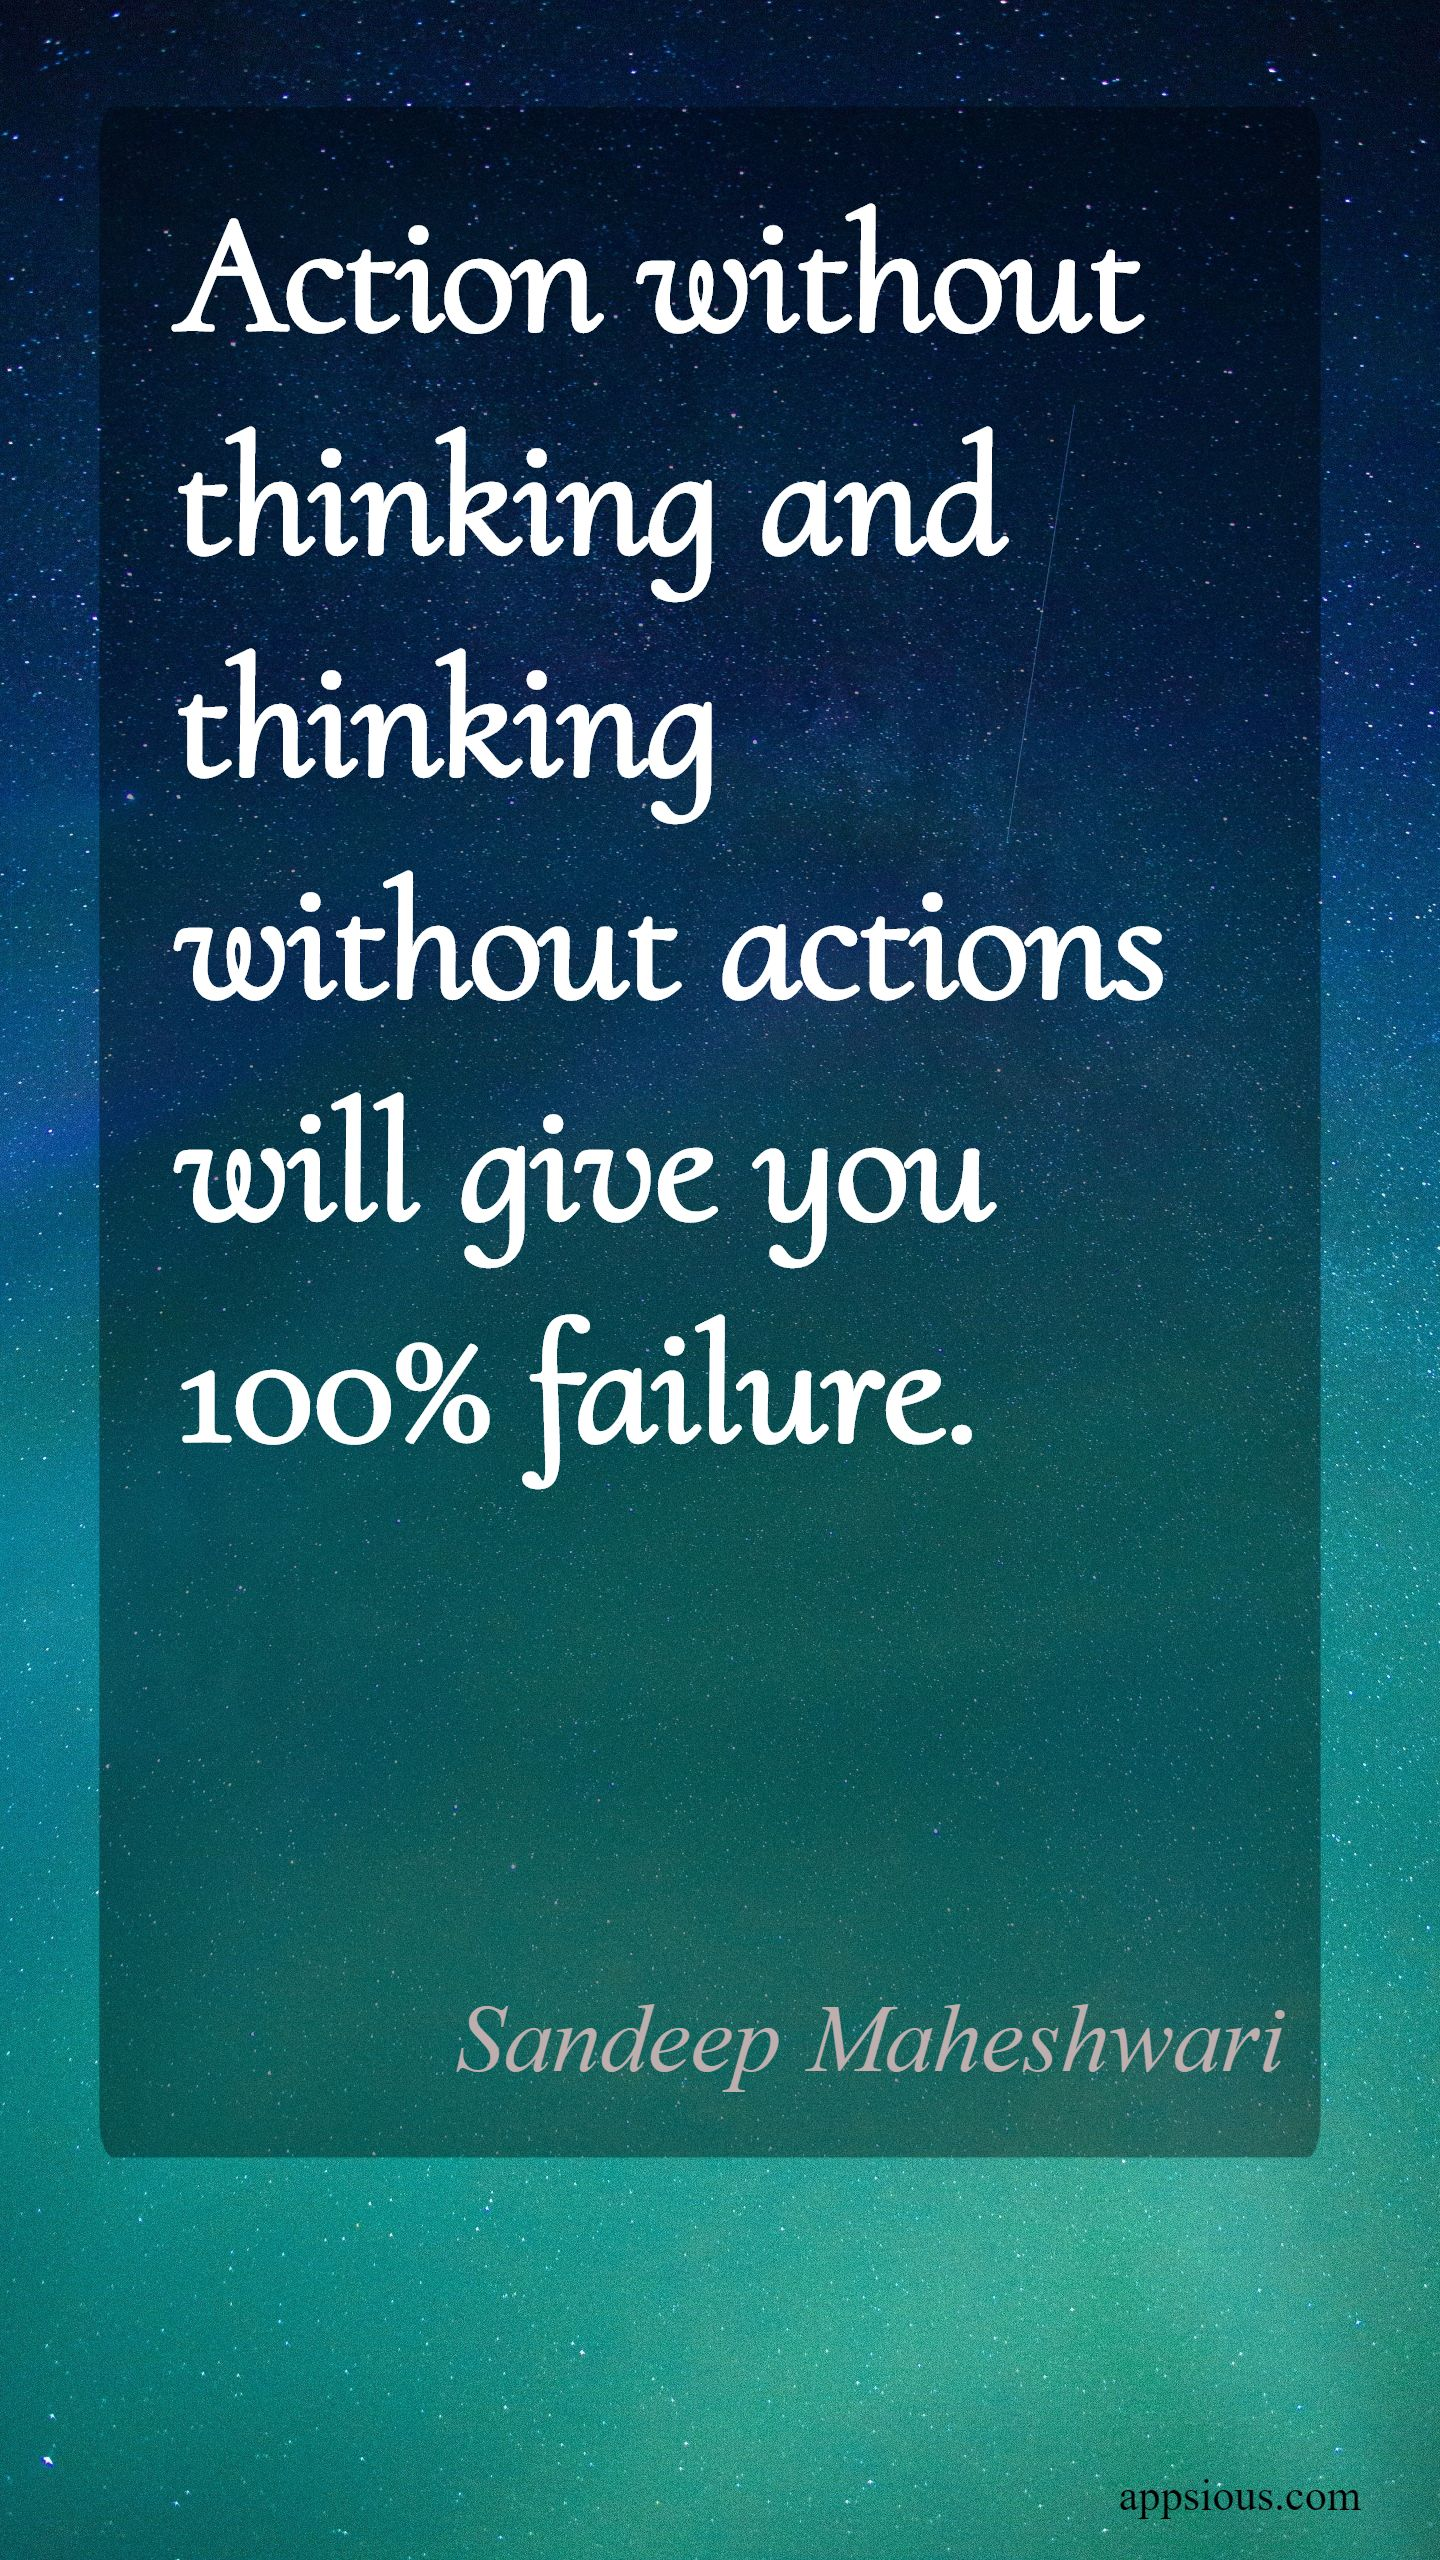 Action without thinking and thinking without actions will give you 100% failure.